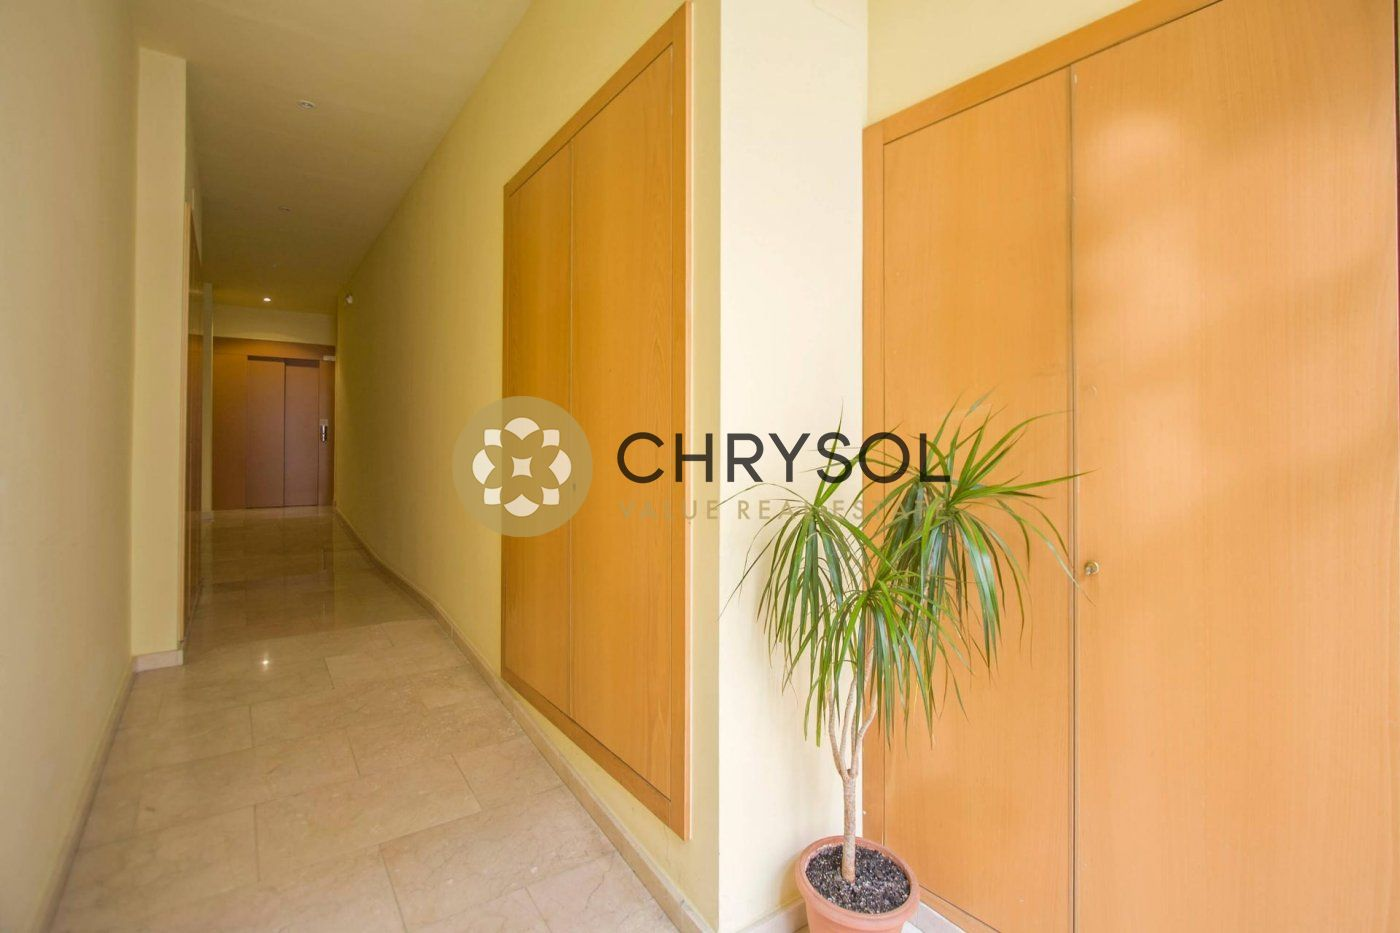 Photogallery - 14 - Chrysol Value